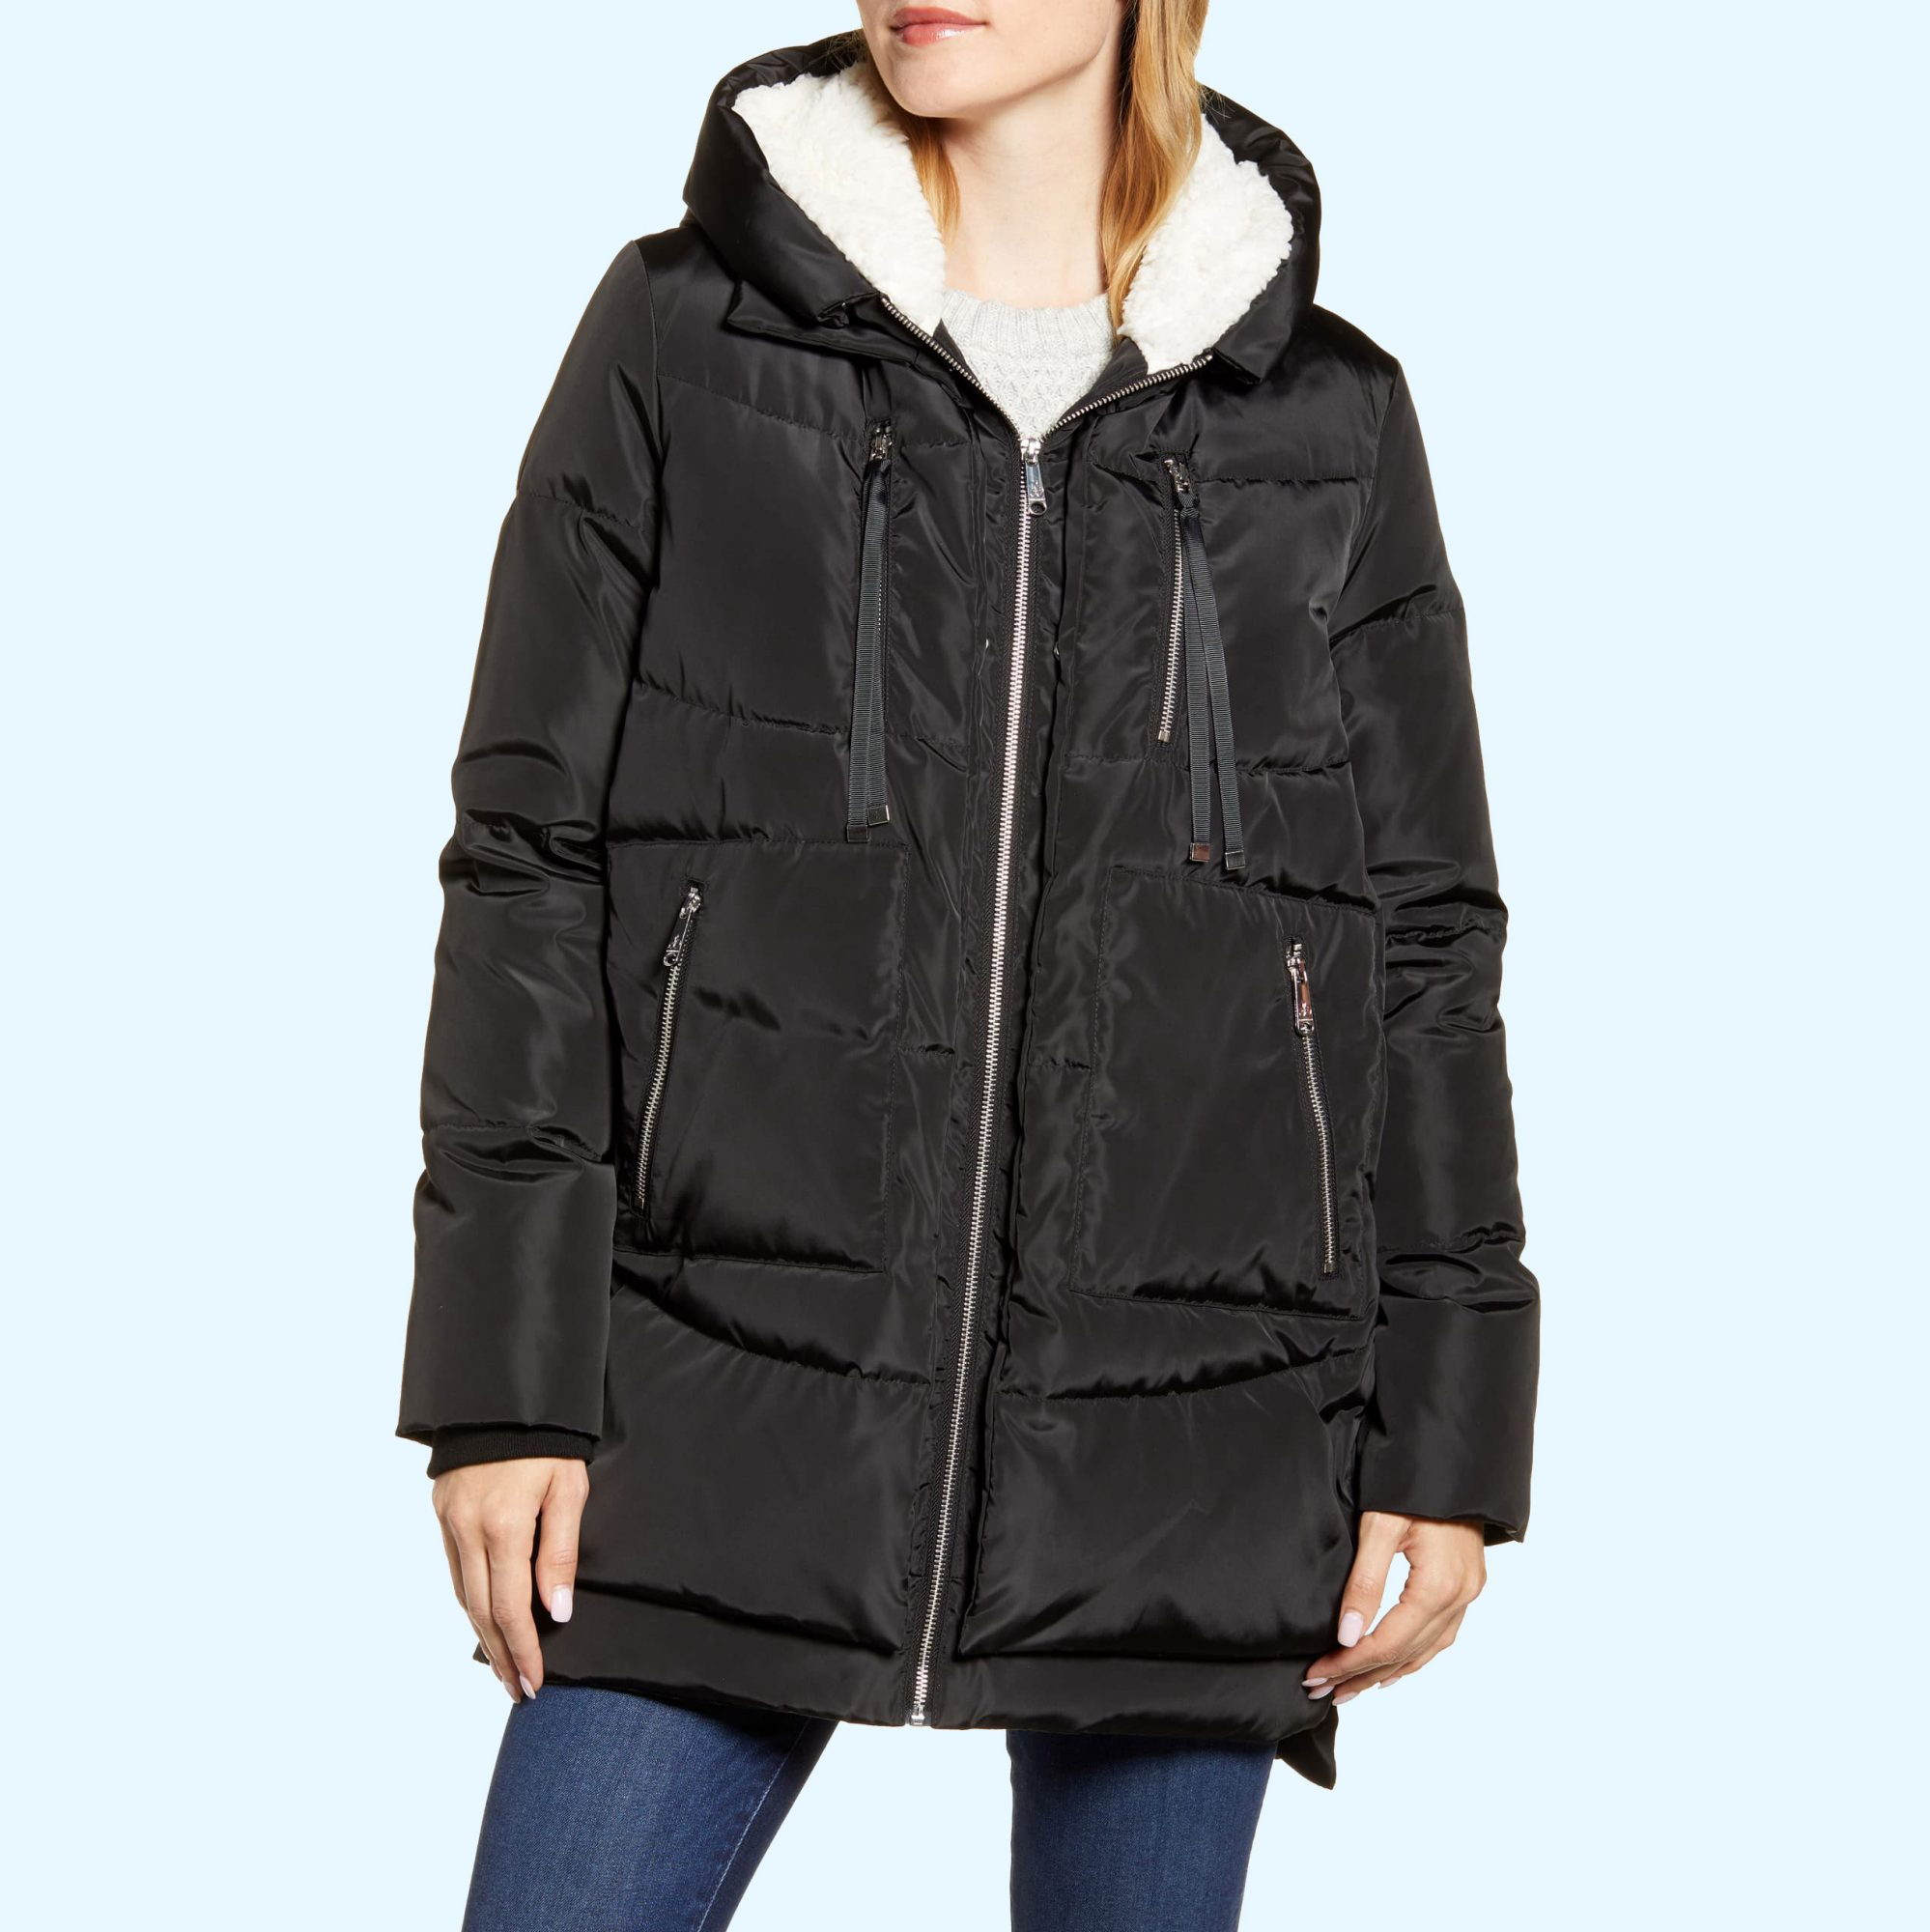 Sam Edelman Rsquo S Puffer Looks Like Amazon Rsquo S Viral Orolay Coat Instyle